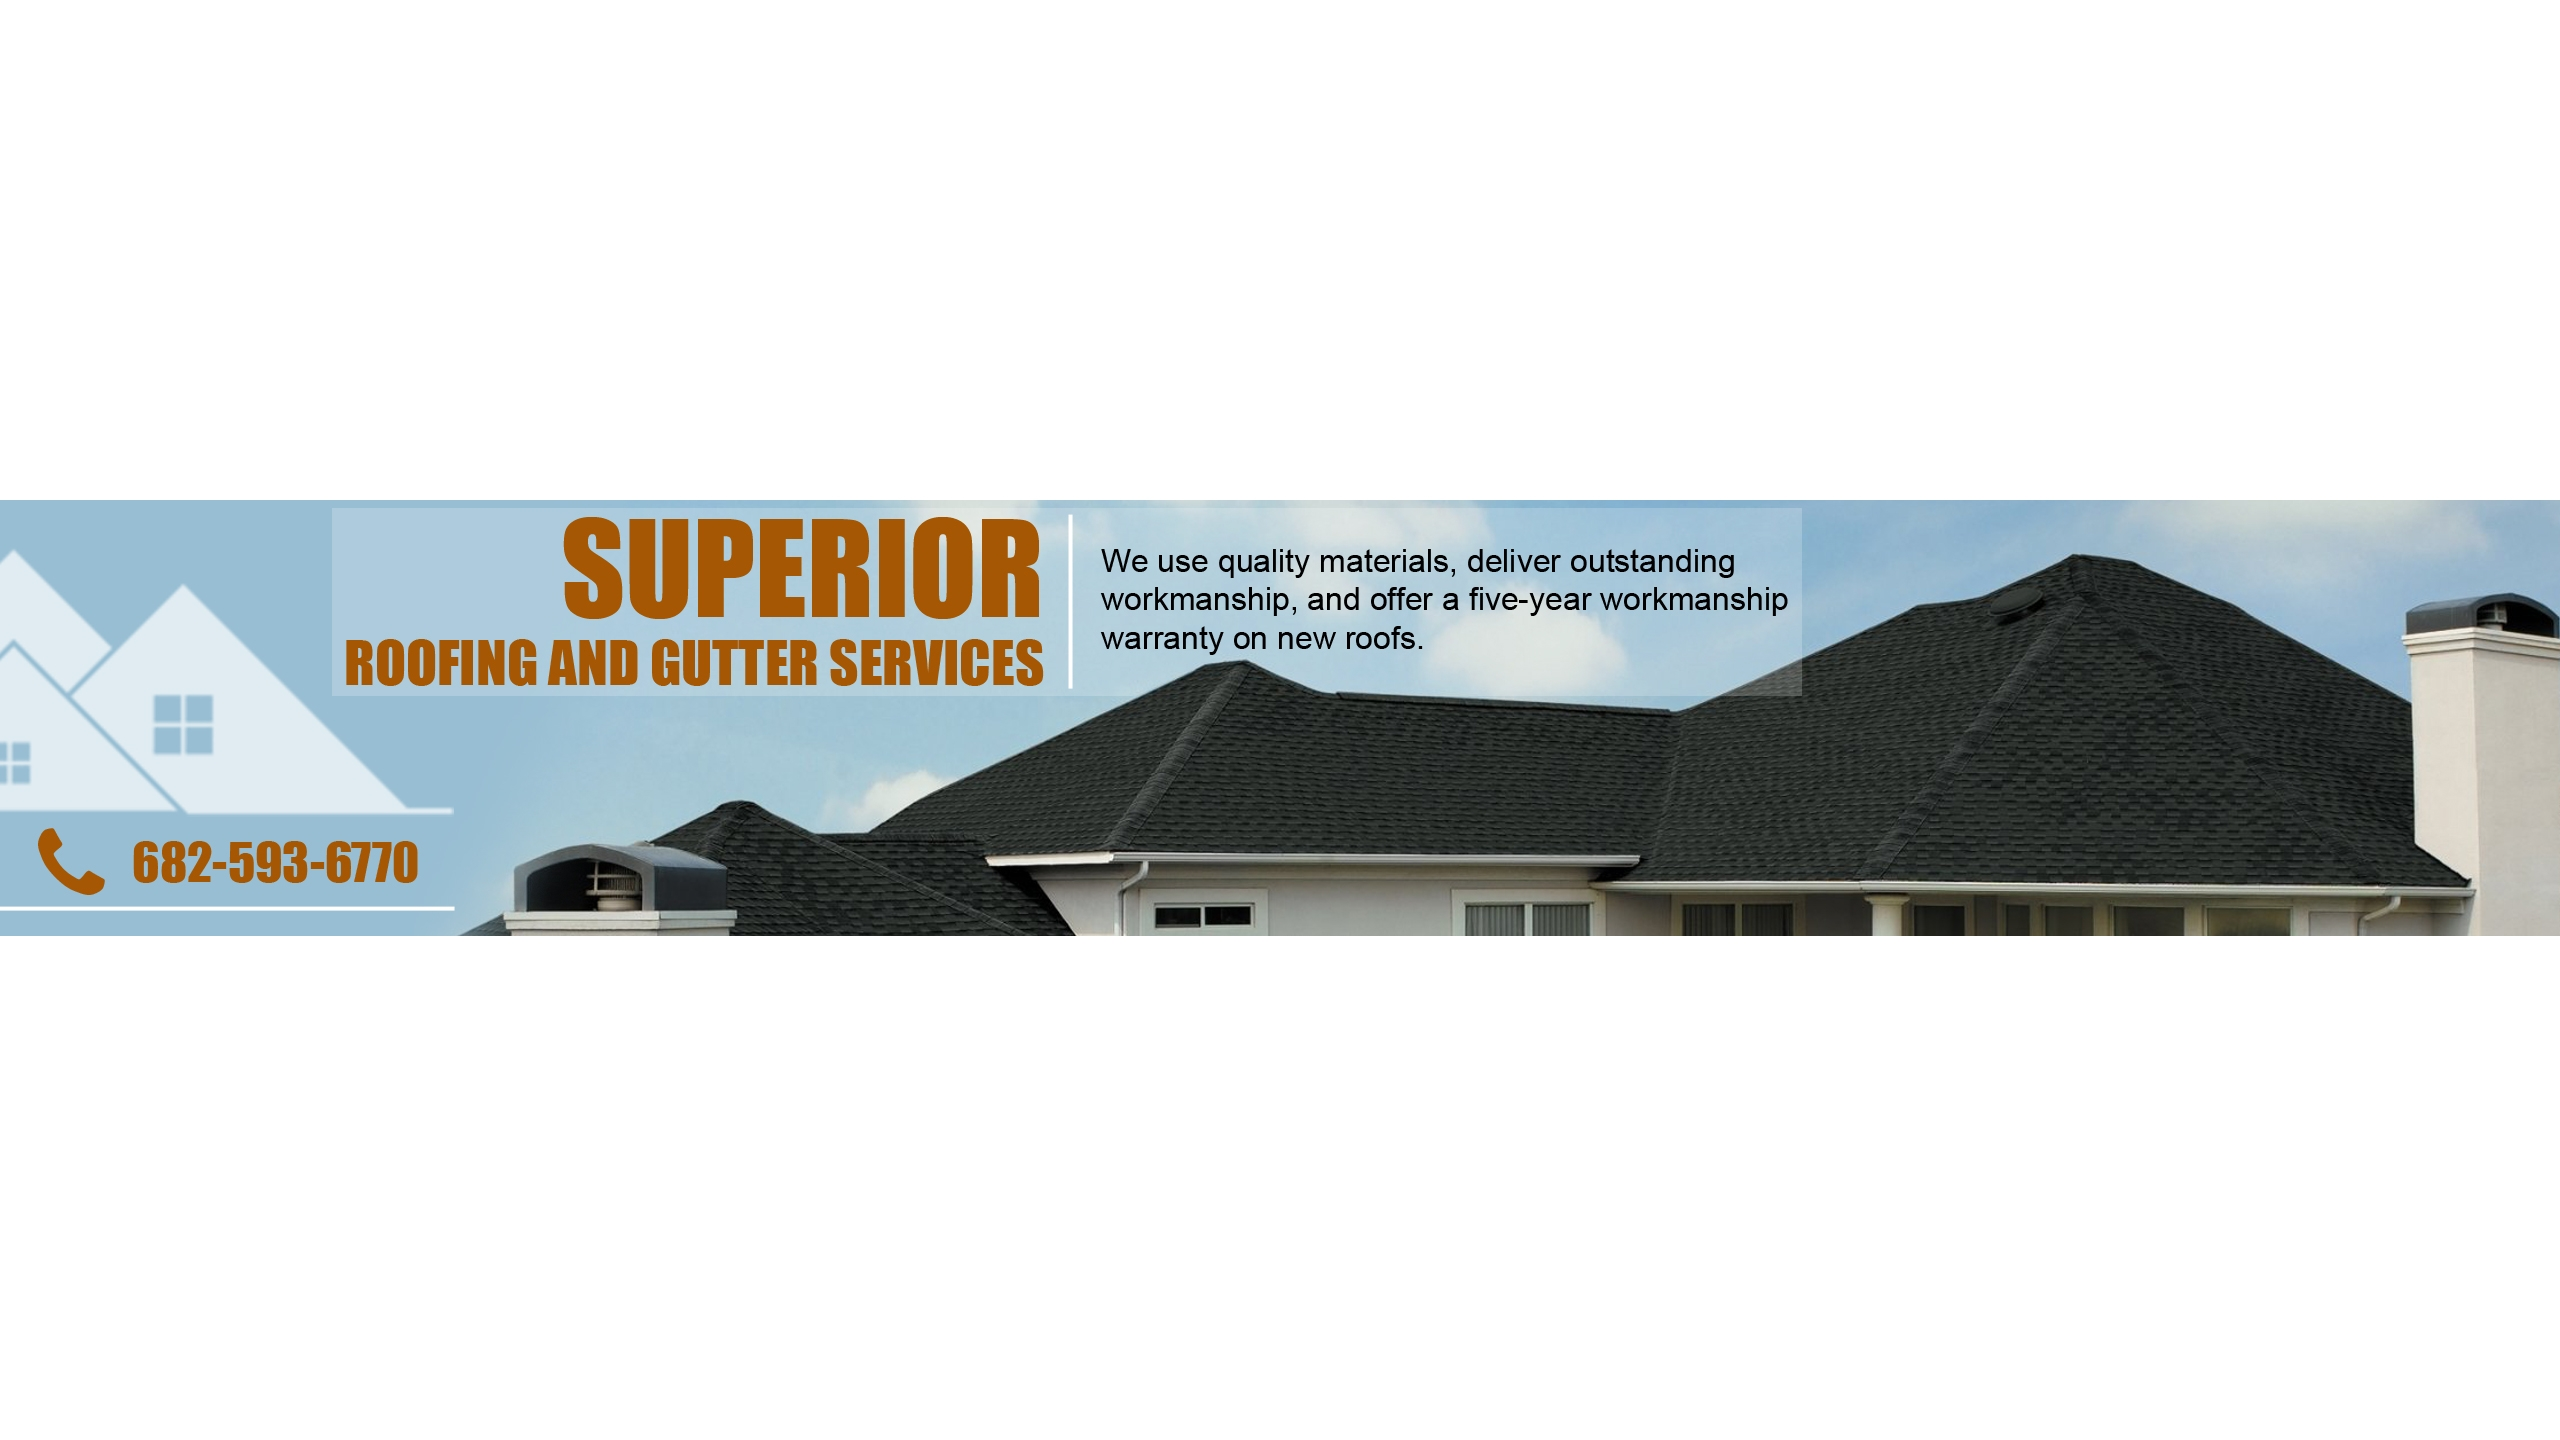 Pro Select RoofingPro Select Roofing offers commer (@proselectroofing) Cover Image